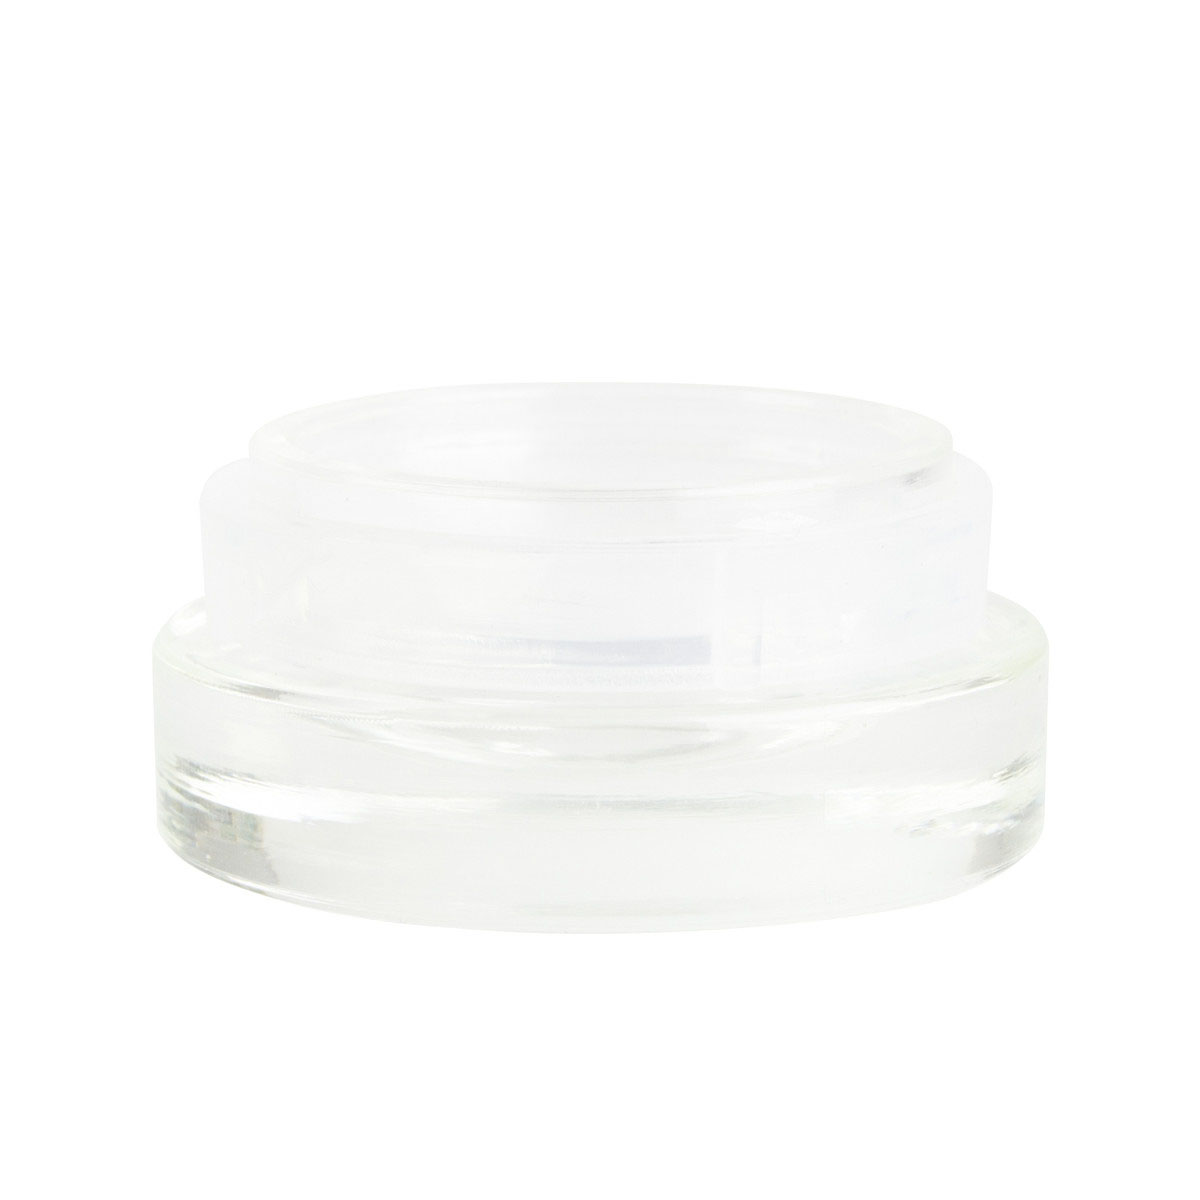 Medium 1.0g Child Resistant Palm N Turn Glass Concentrate Container Bases (400 Qty.) (Copy)